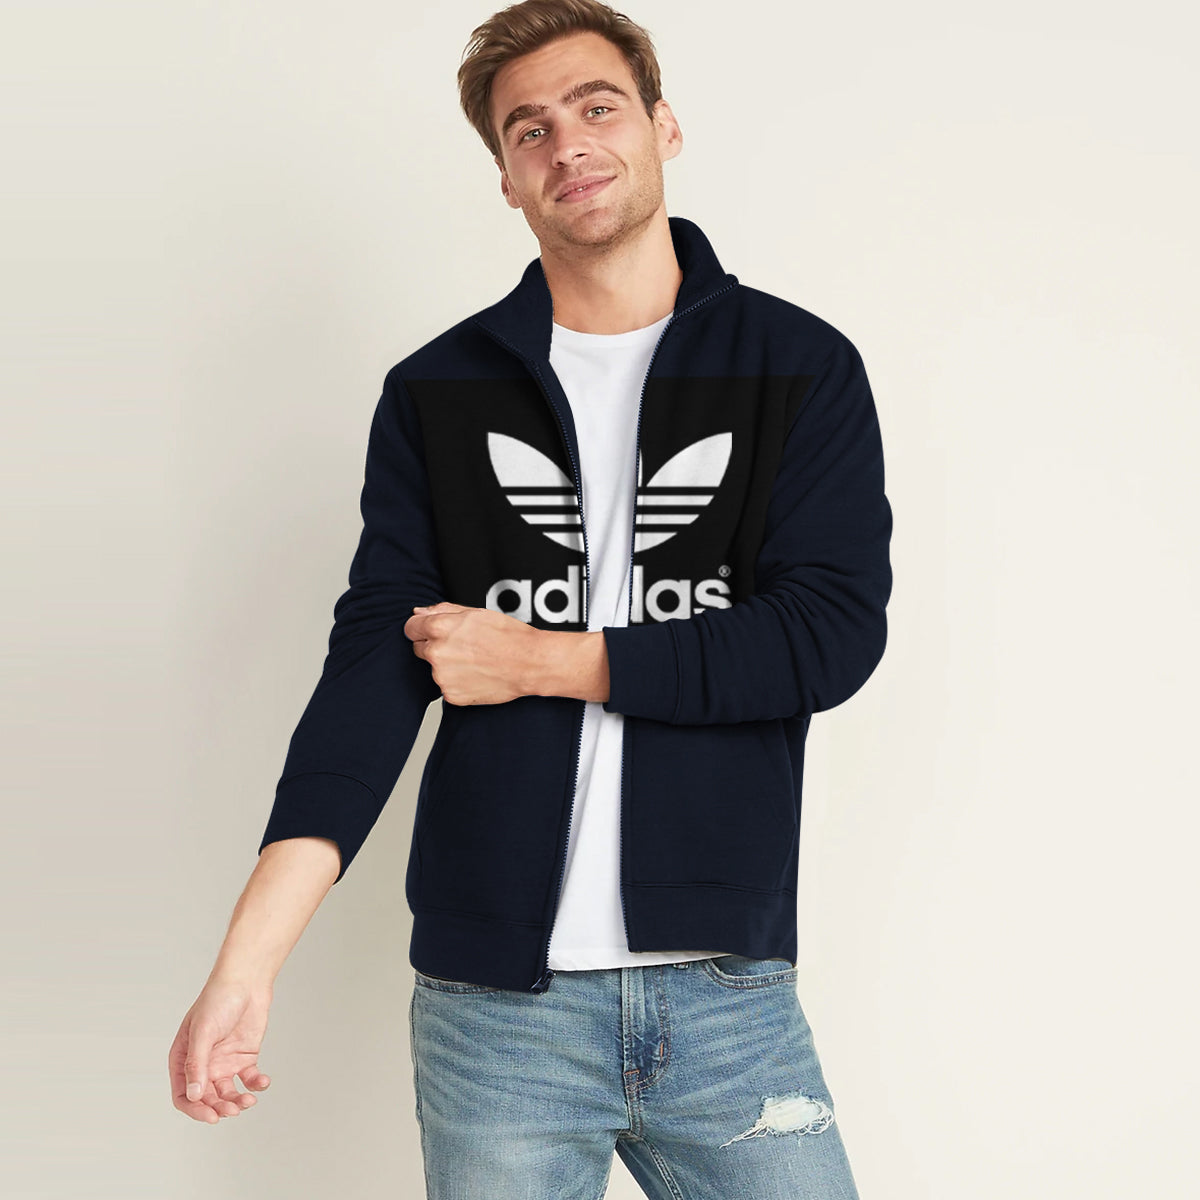 Adidas Fleece Full Zipper Mock Neck Jacket For Men-Dark Navy-BE11122